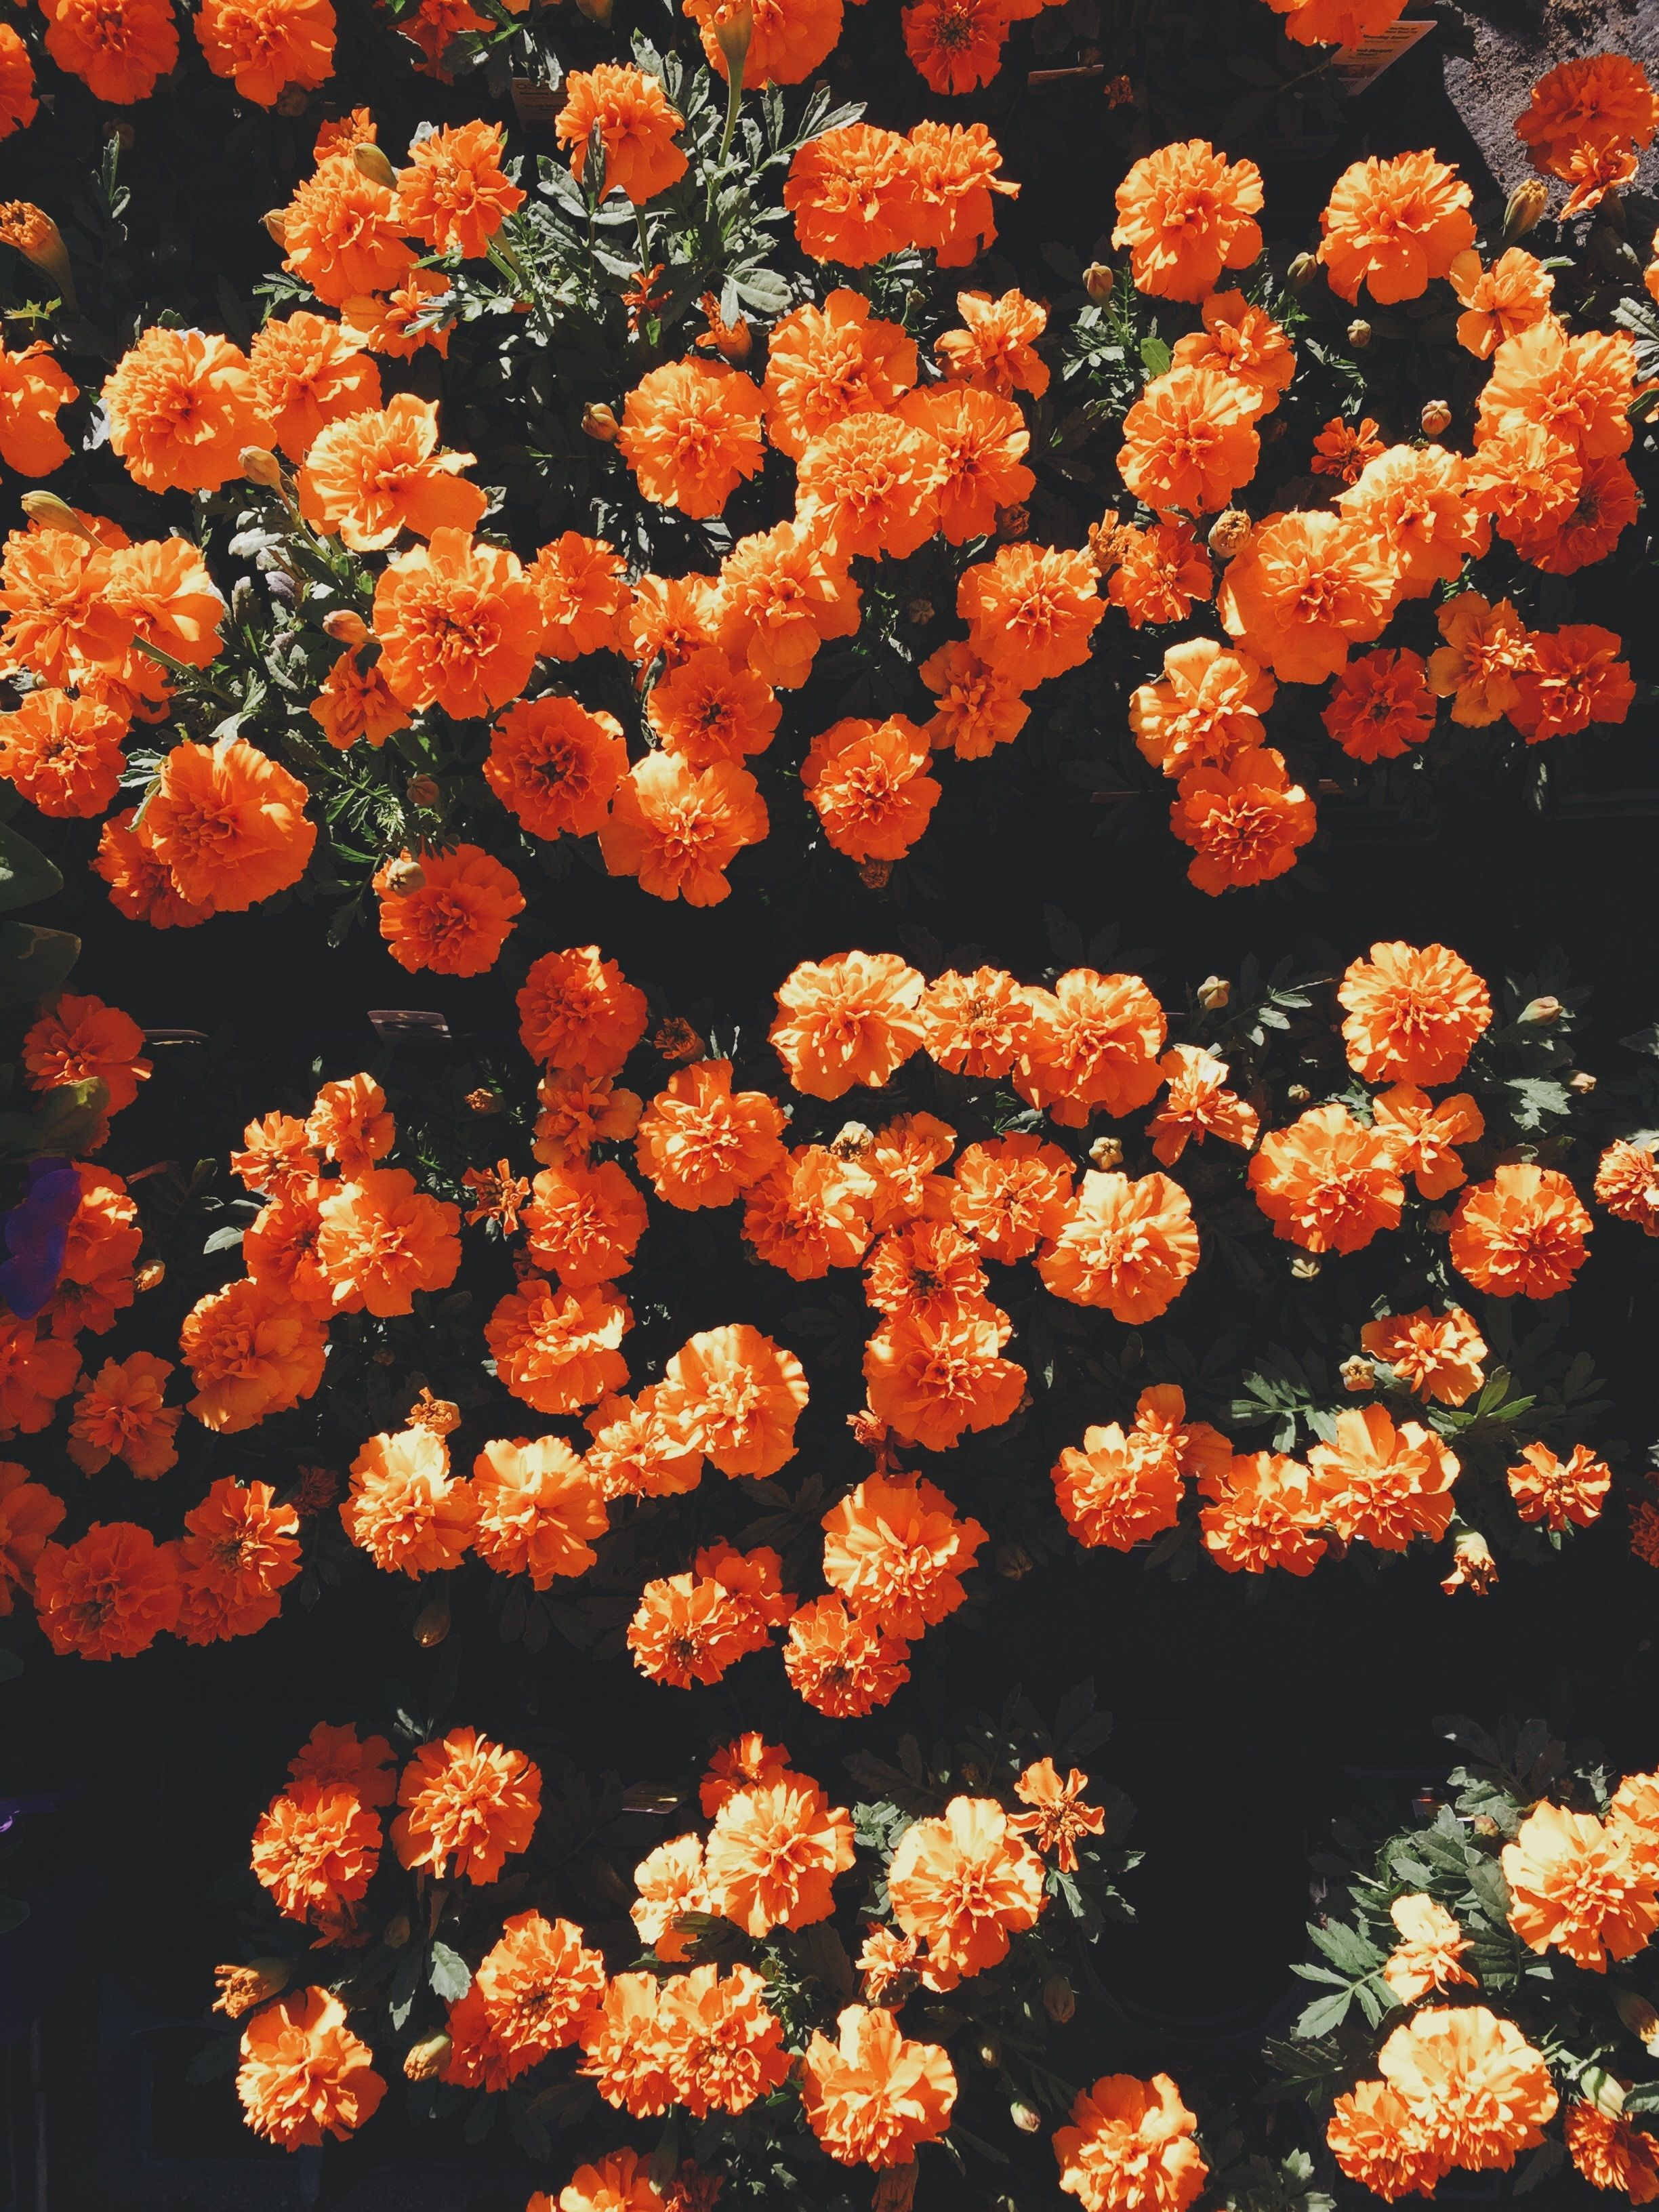 Orange Floral Iphone Wallpapers Top Free Orange Floral Iphone